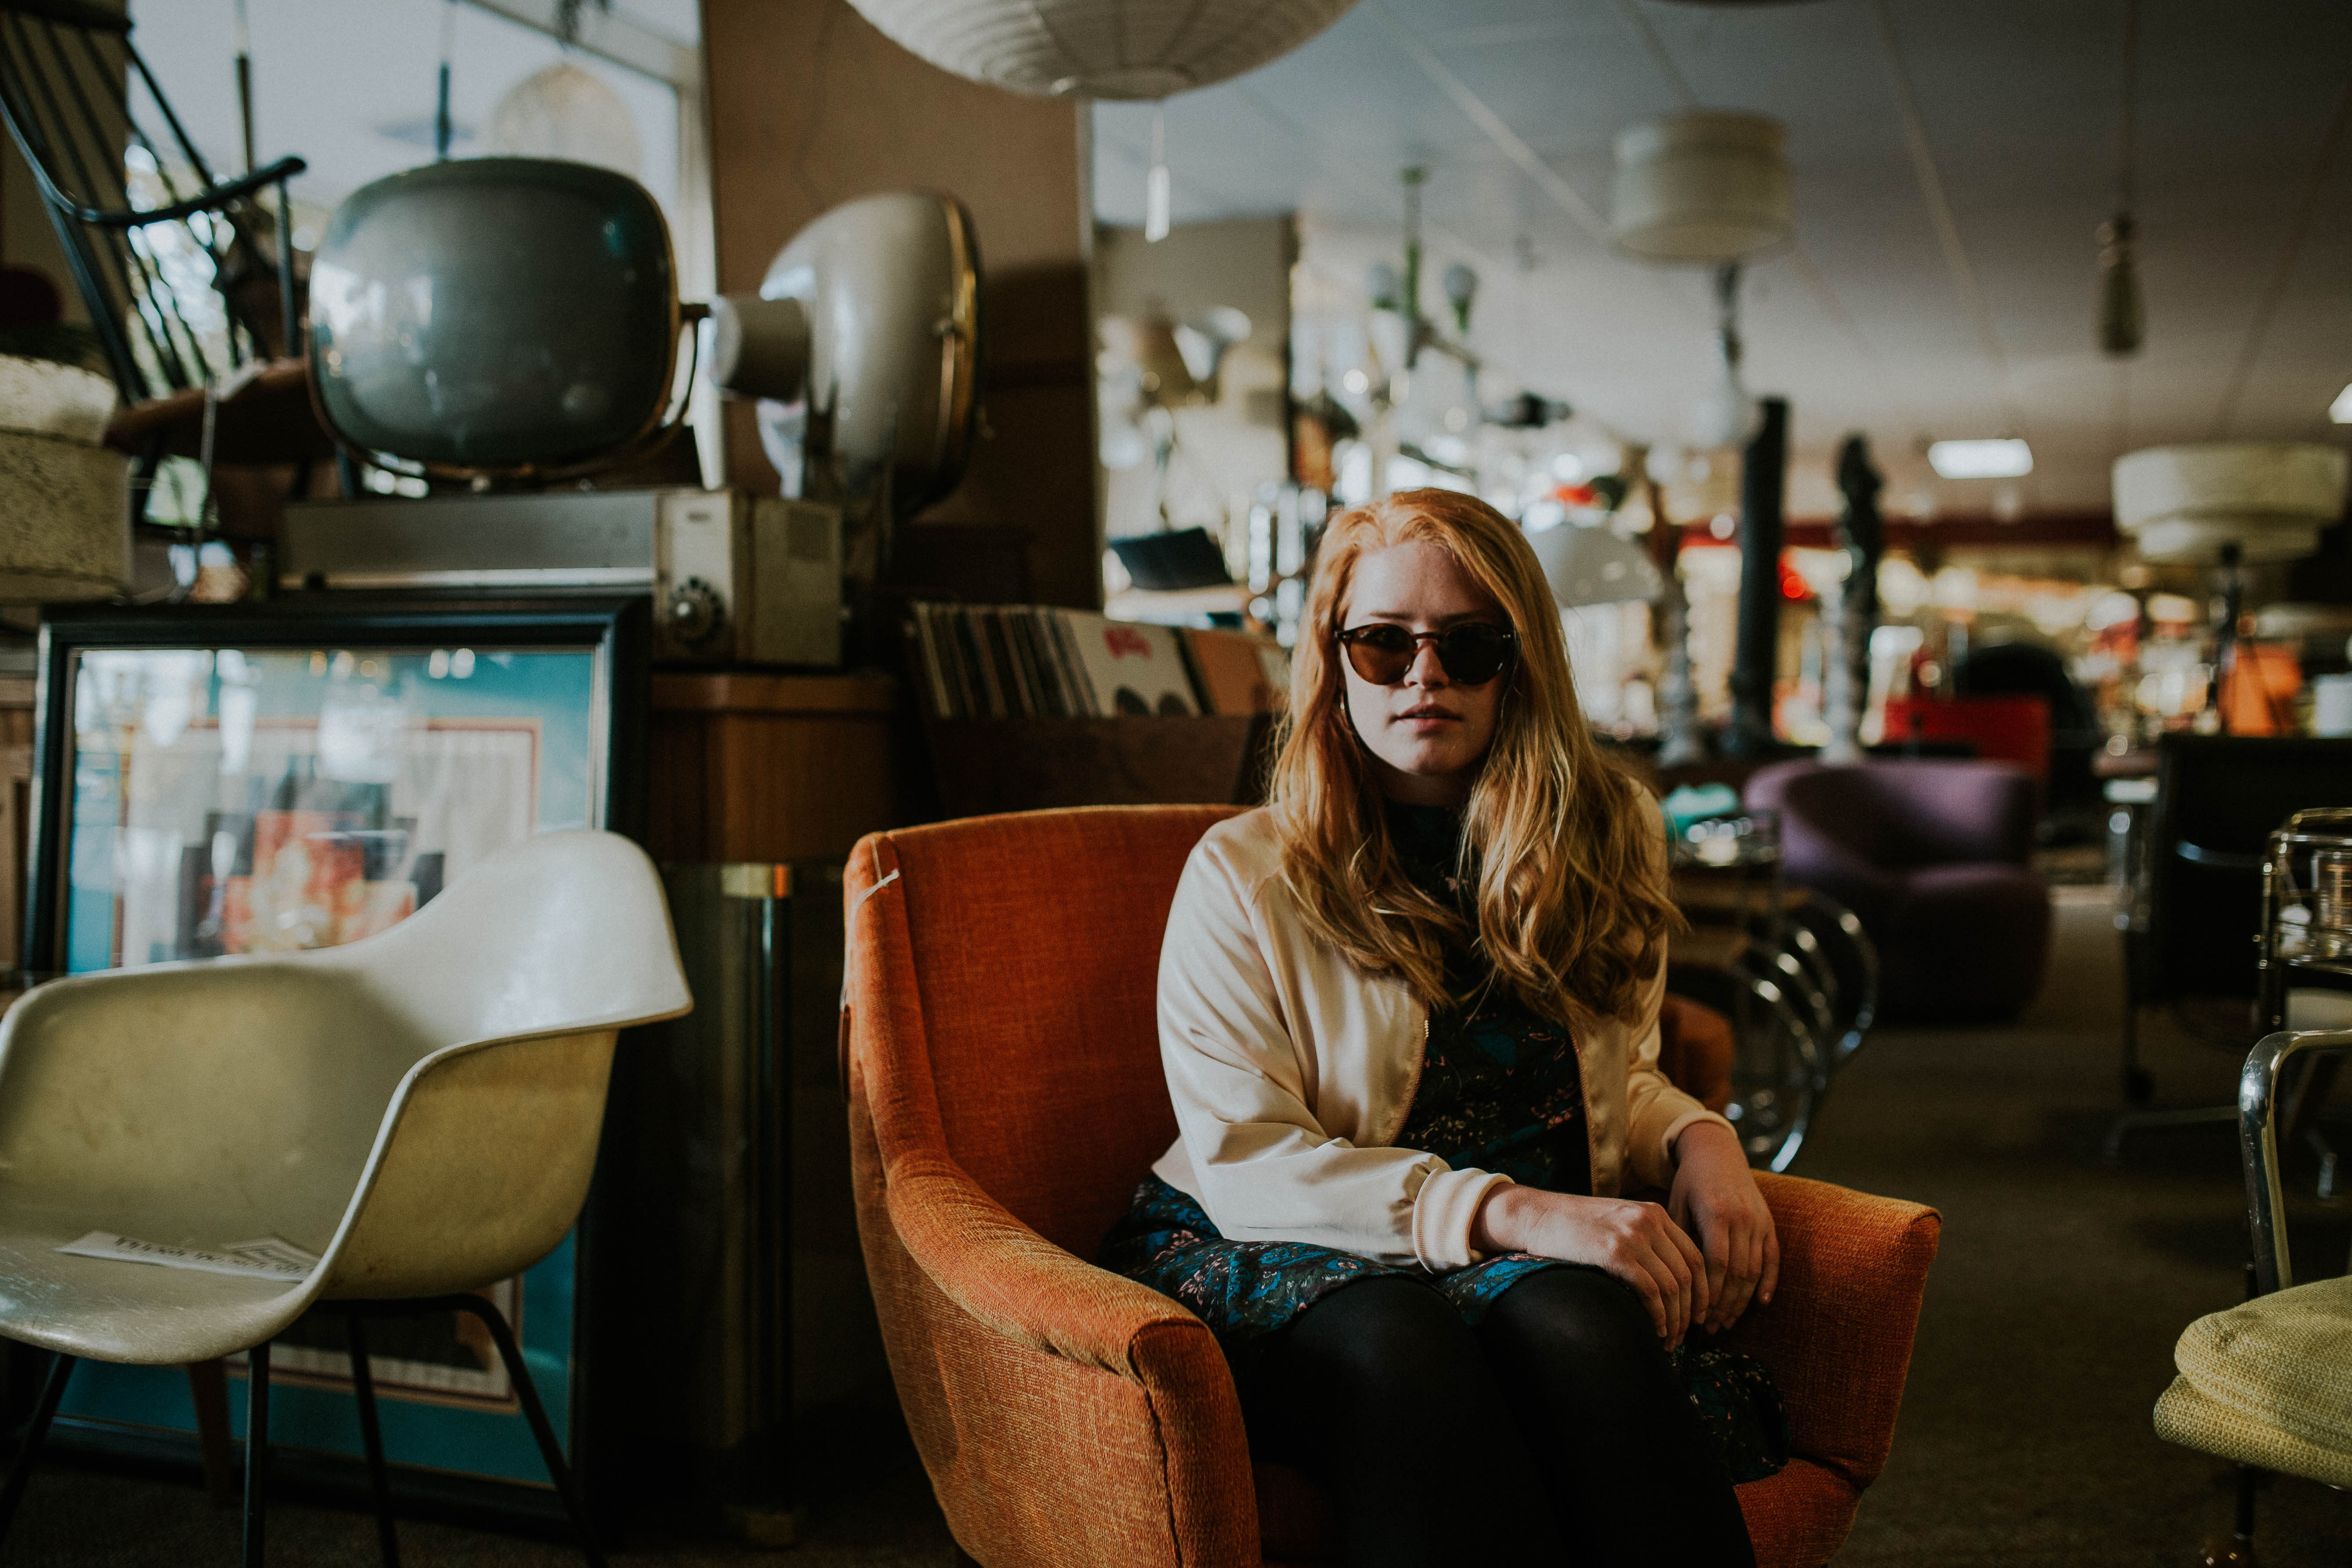 A woman in sunglasses sits on an orange chair inside a secondhand store